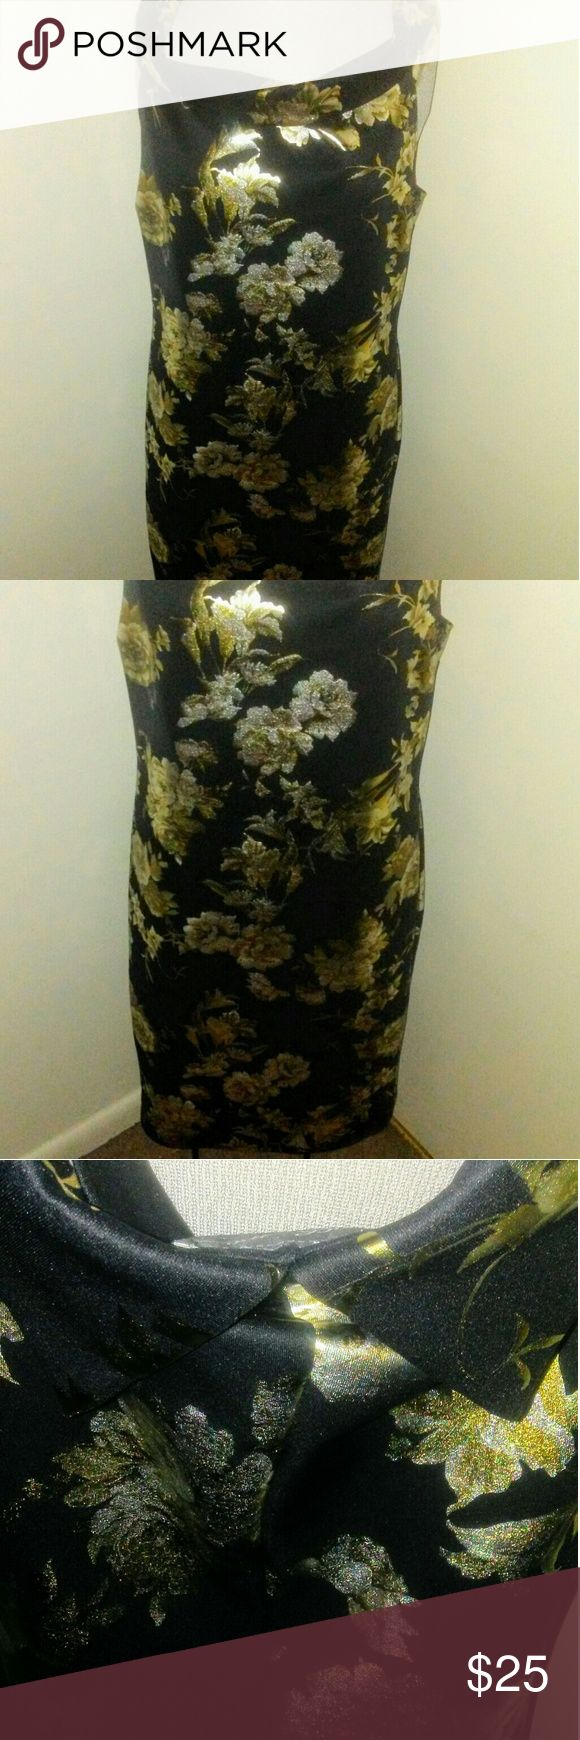 Glamorous Dress (NWOT) Get Glammed up and show off those Curves wearing this Beautiful Black, Gold, and Silver Bodycon Dress.. It is Size 3x (True to Size) Super Scretchy.. Silky Material.. Features a Off Shoulder Design. Brand New, Only worn to model. Dresses